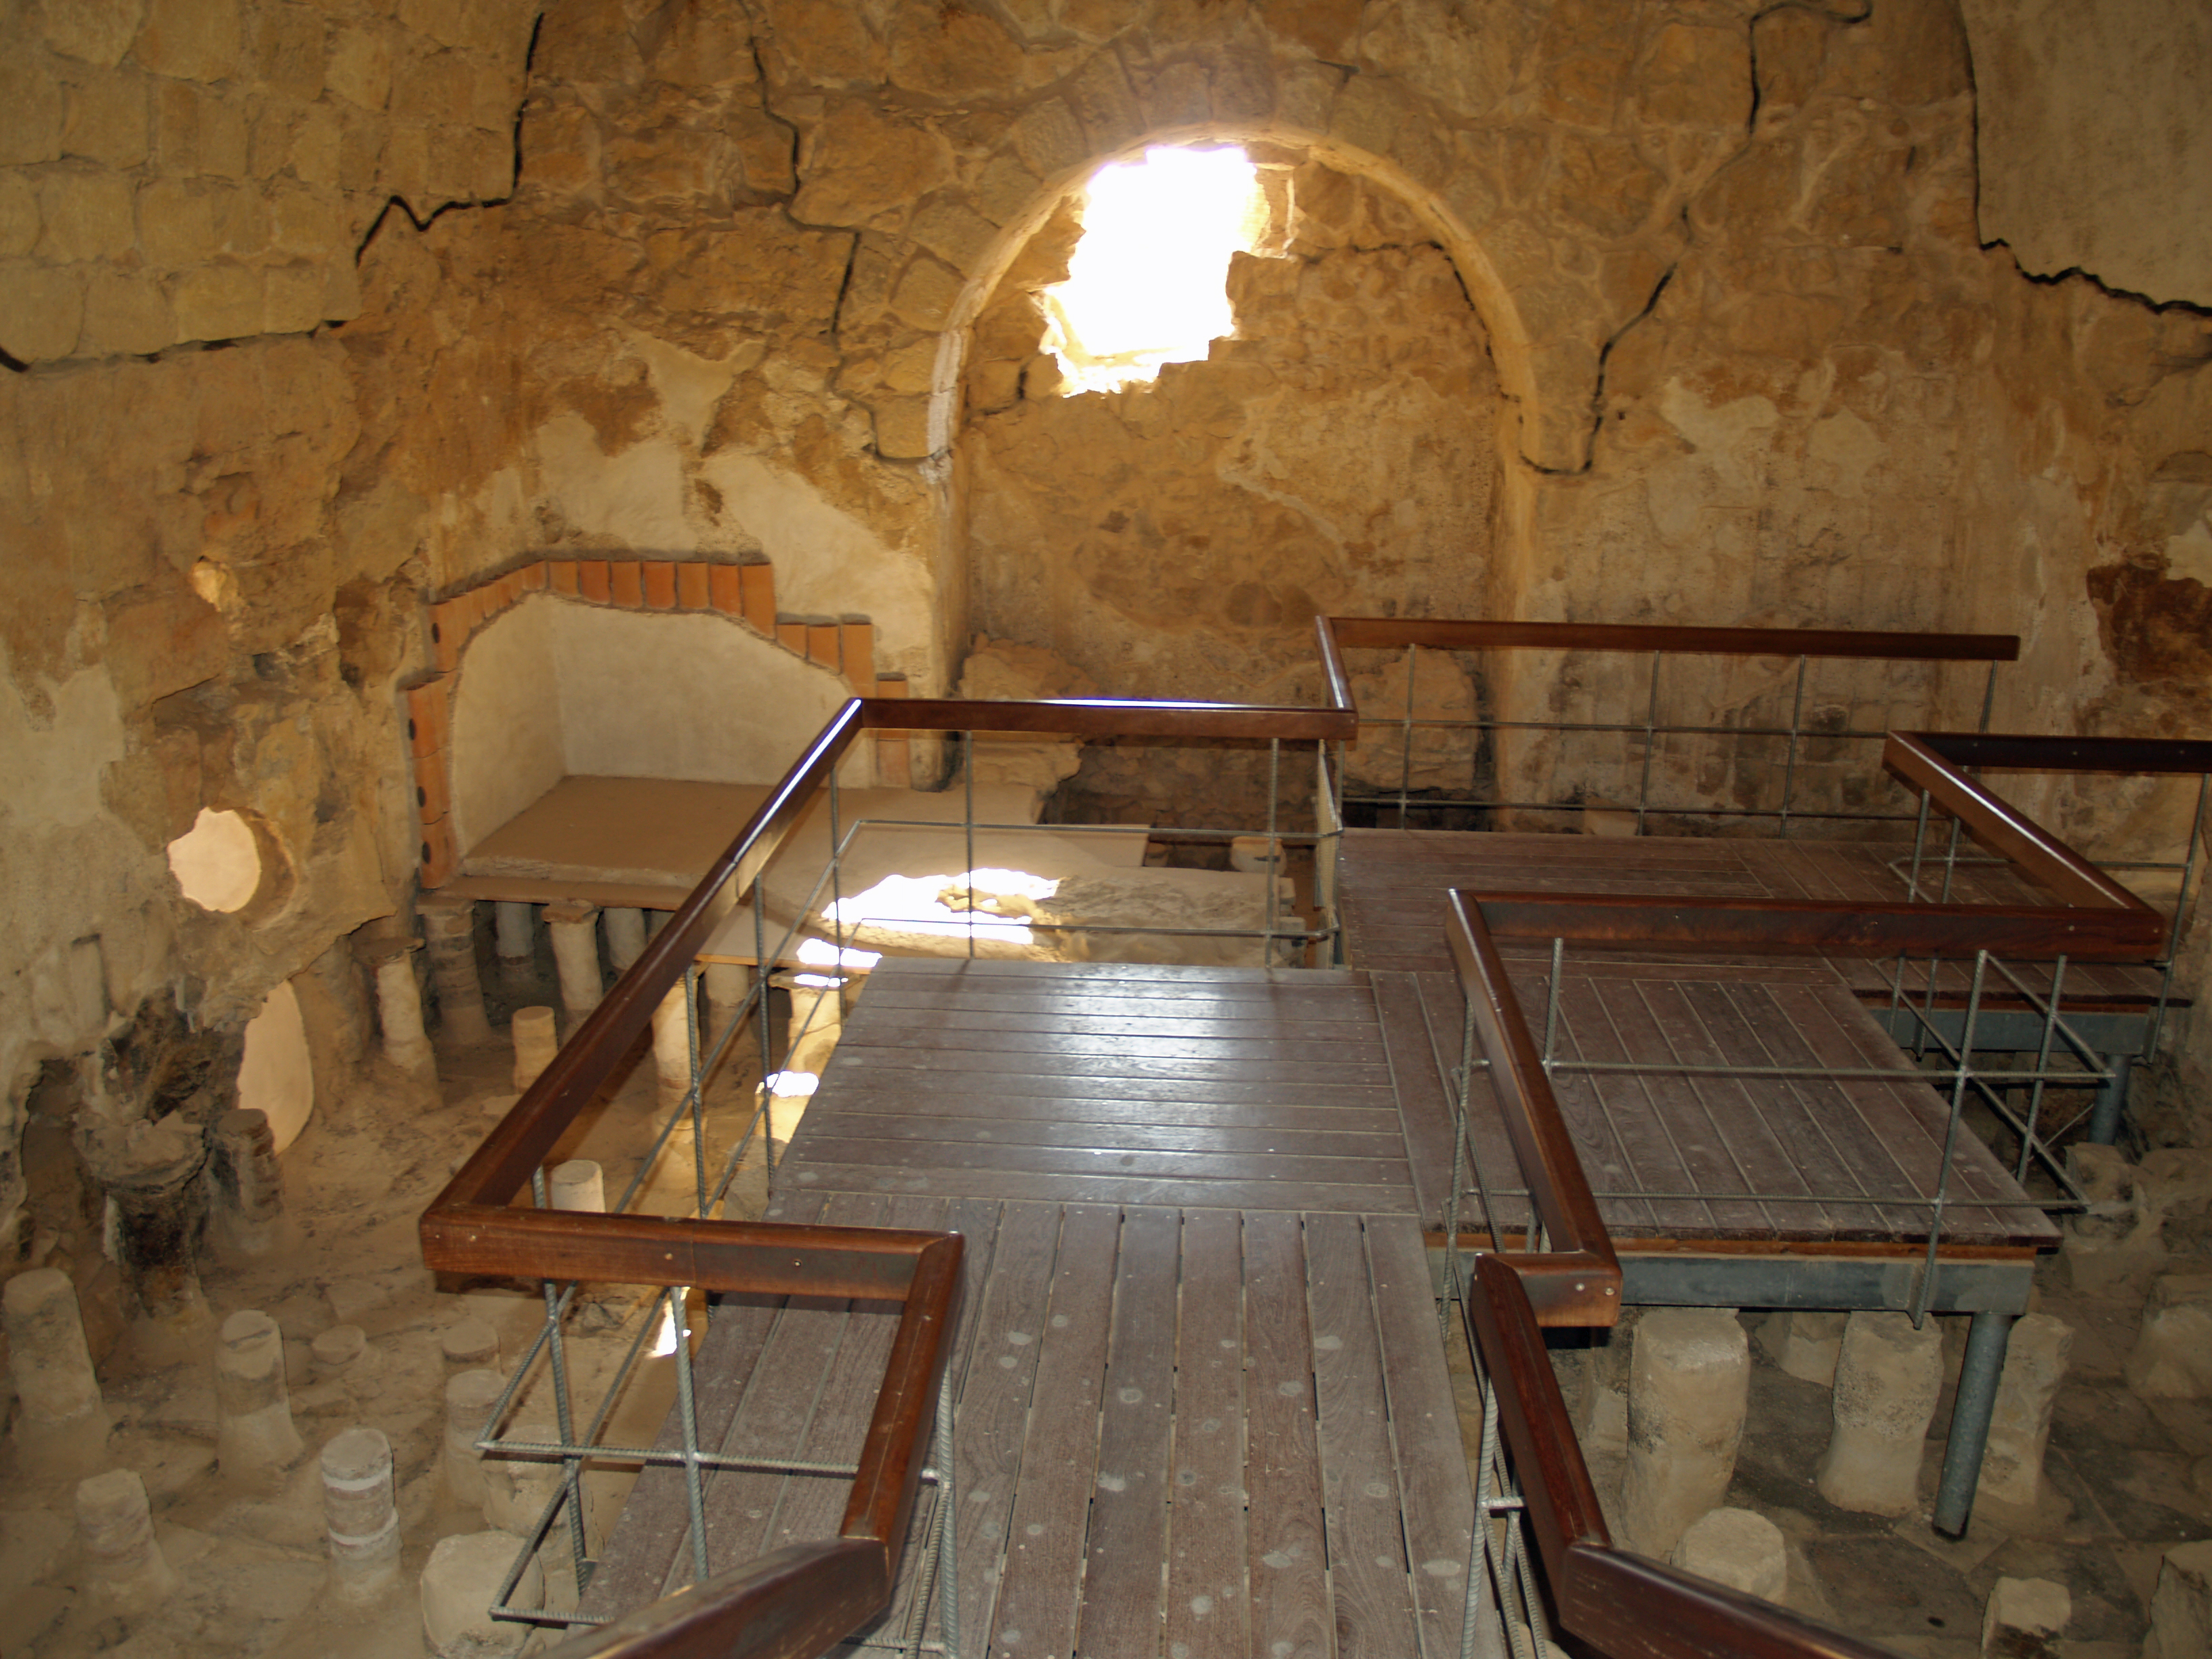 Caldarium from the Roman bath house at Masada, Israel